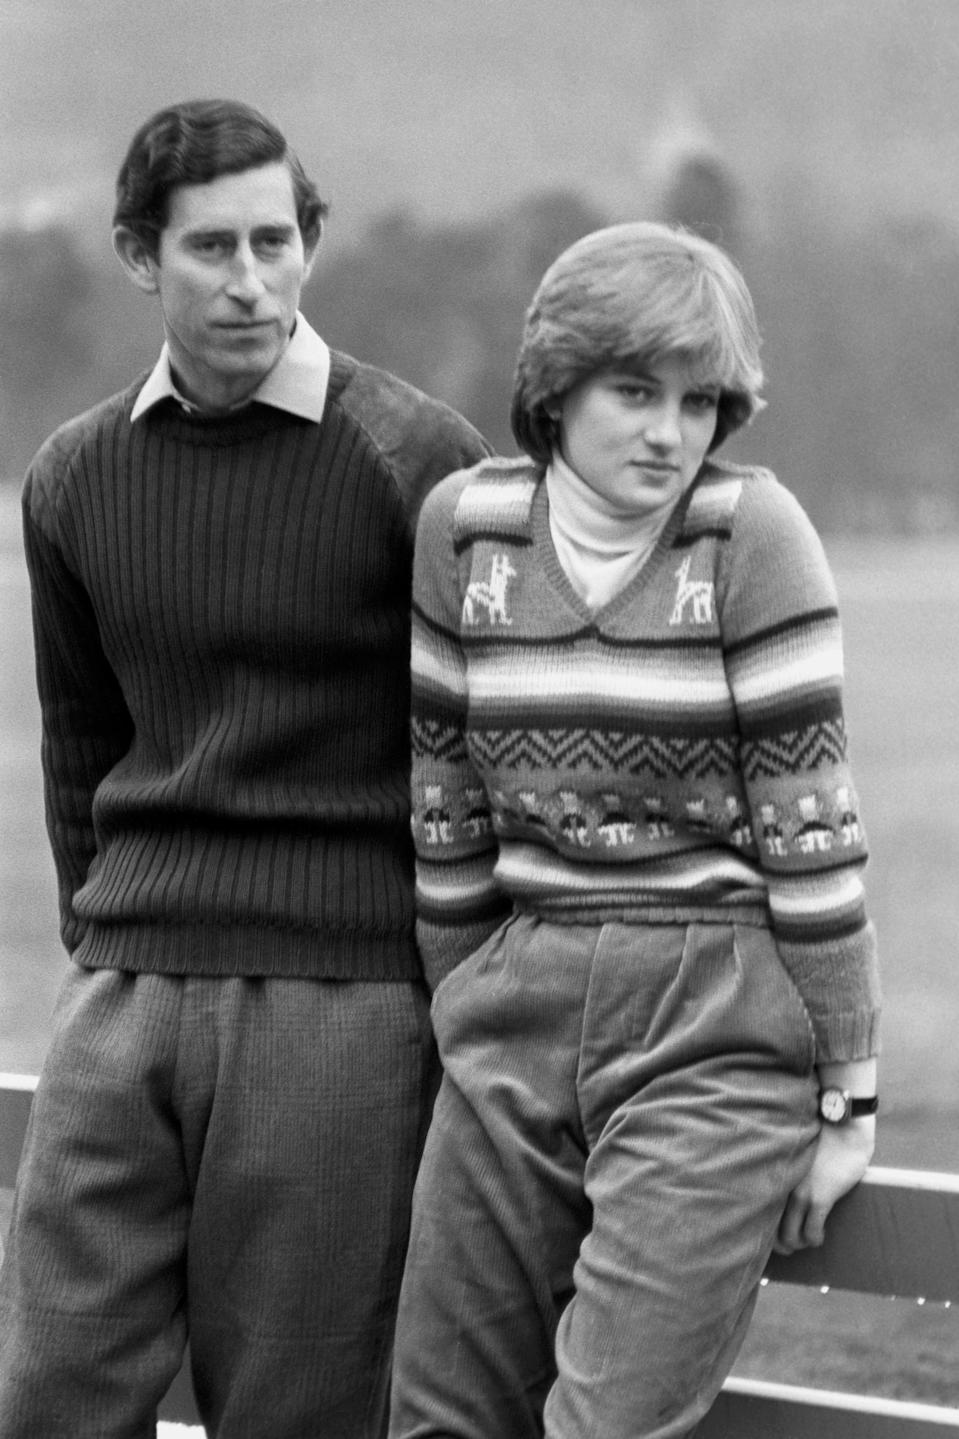 The casually clad Prince Charles of Wales and his fiance Lady Diana Spencer, relaxing on a fence at Balmoral on May 6, 1981, during their Scottish holiday.